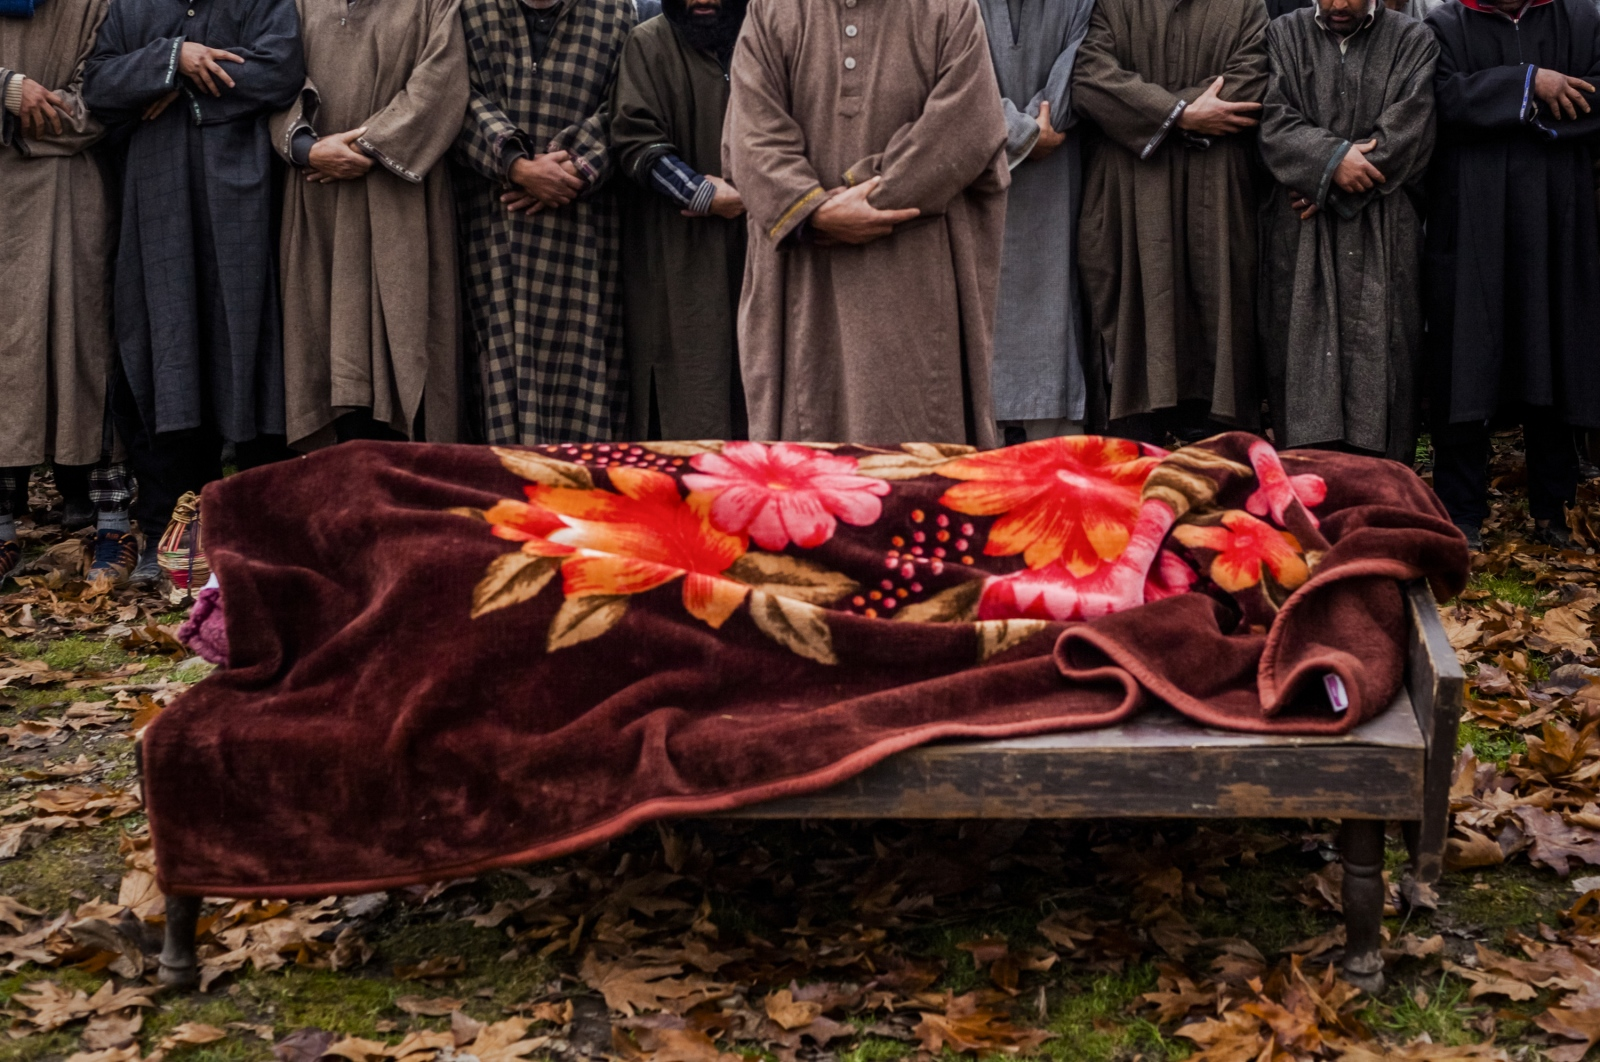 Kashmiri mourners offer prayers during the funeral of Rasiq Ahmed Khan, aged around 22, and who was found shot to death, in Watchohallan village in Shopian, south Kashmir, some 80 kms from Srinagar, on December 14, 2015. Raisq, who disappeared on December 13, was found shot to death by gunmen who local residents report were members of the Indian police Special Operations Group.